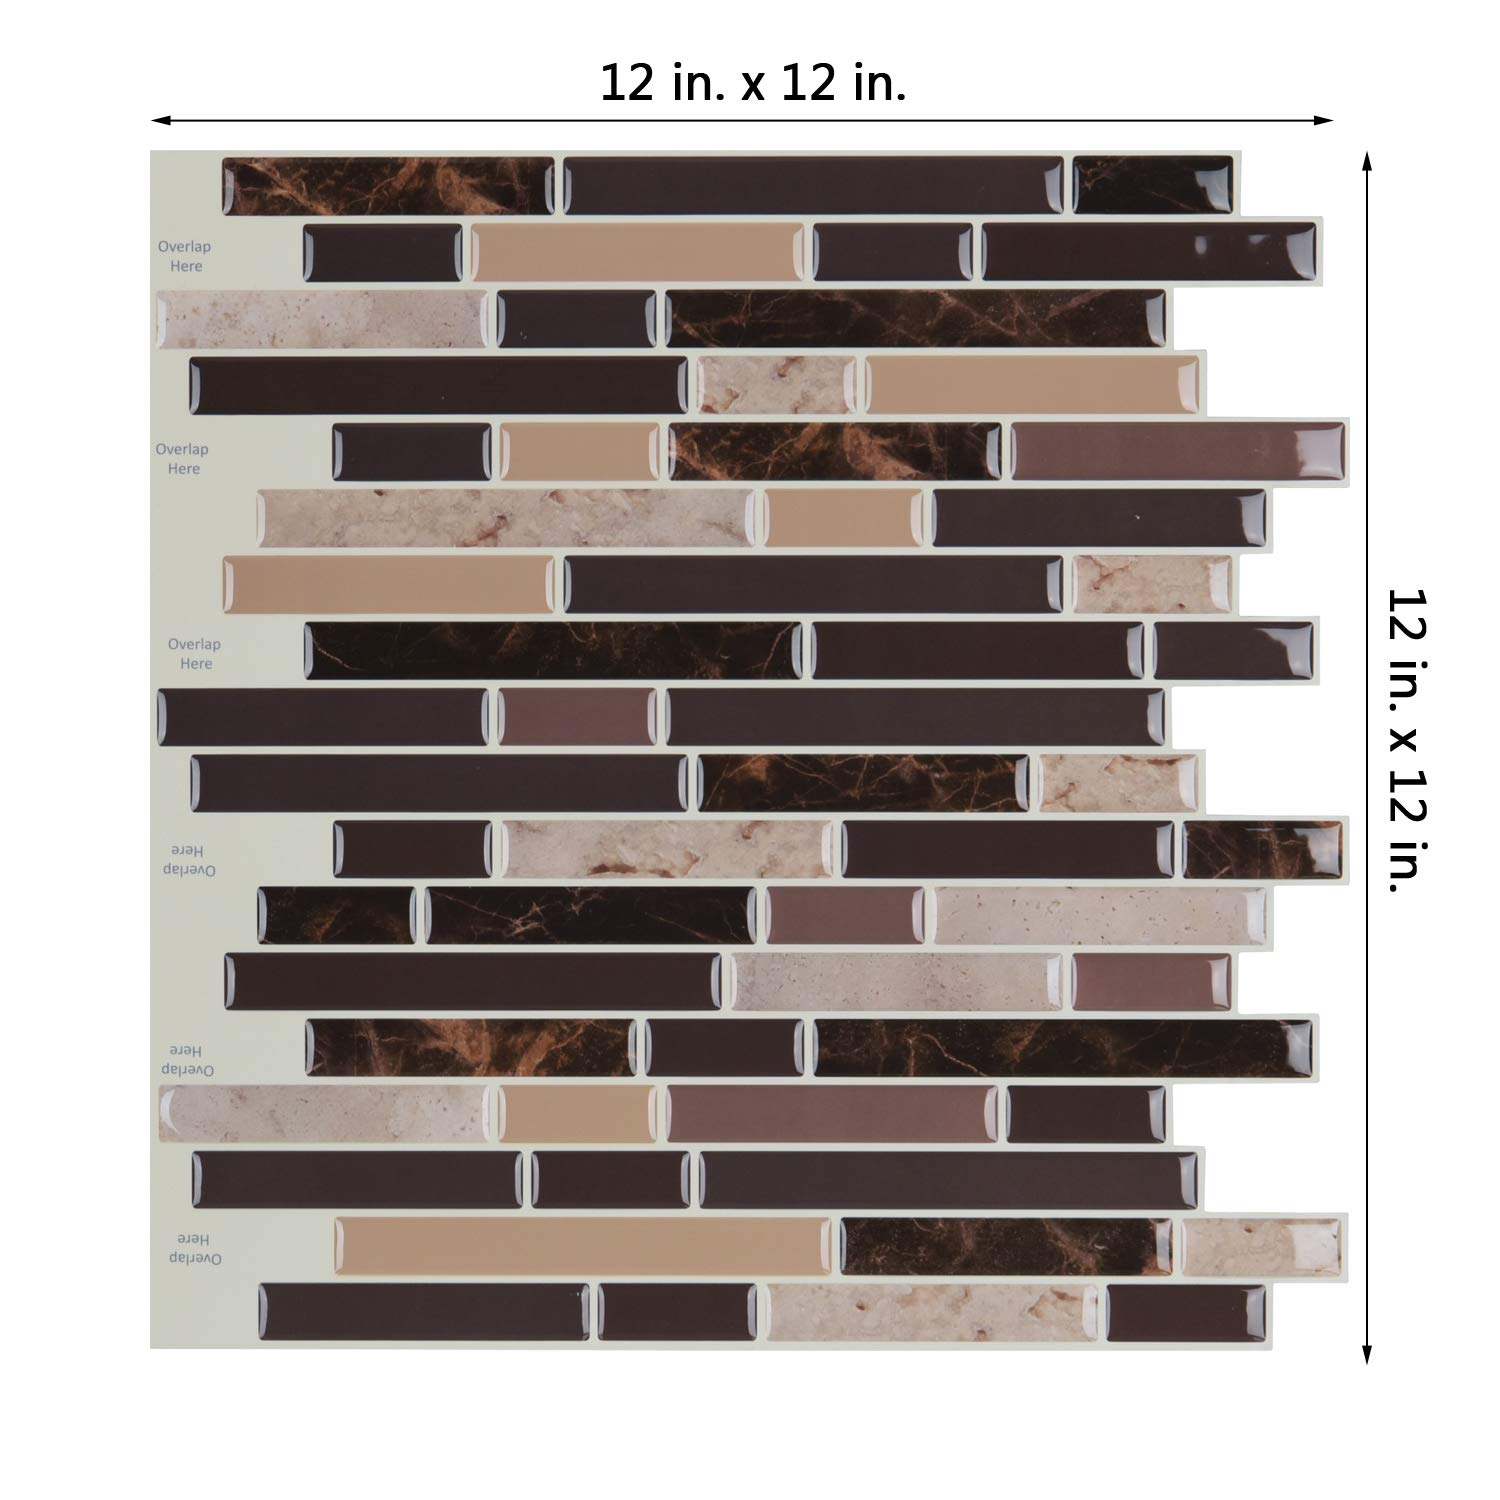 A17039 - Peel and Stick on Wall Tiles for Kitchen Backsplash, Set of 6